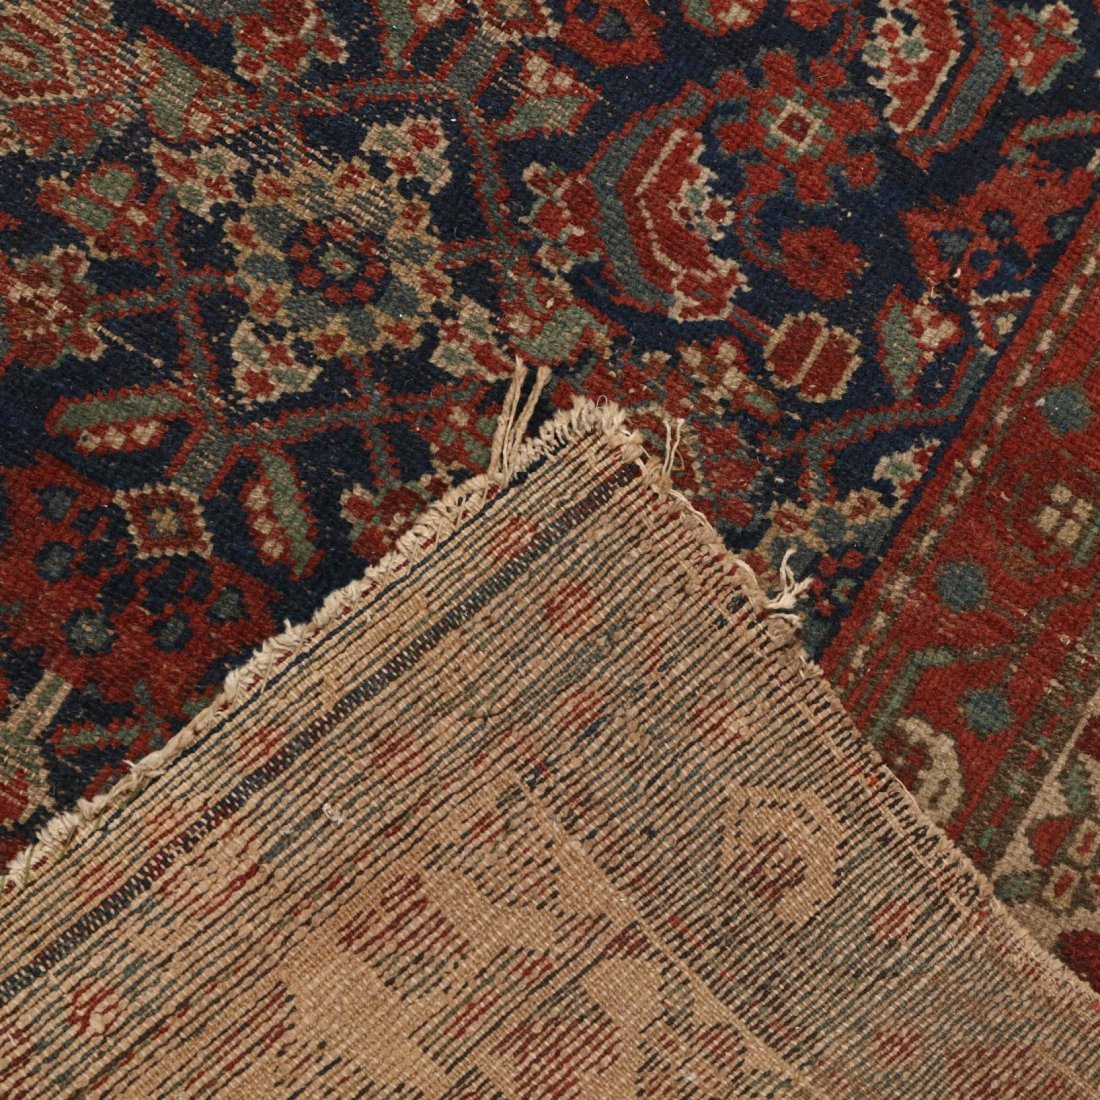 Two Persian Area Rugs - 3